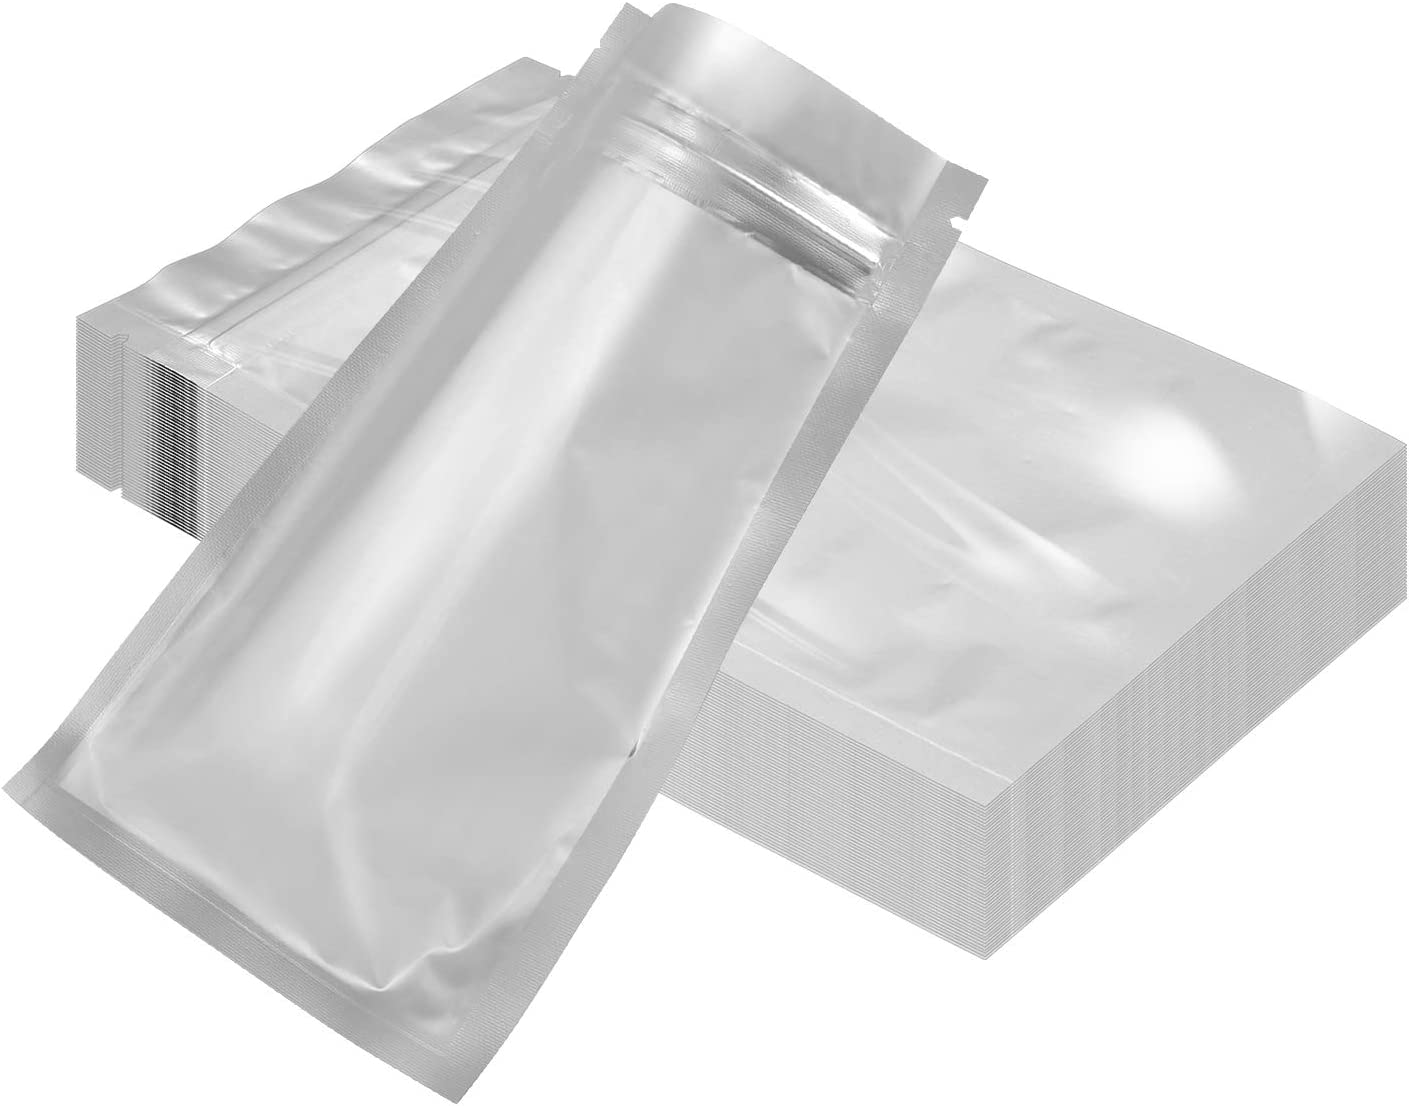 Silver Pure Aluminum Mylar Foil Self Seal Bags Resealable Food Pouches Packaging